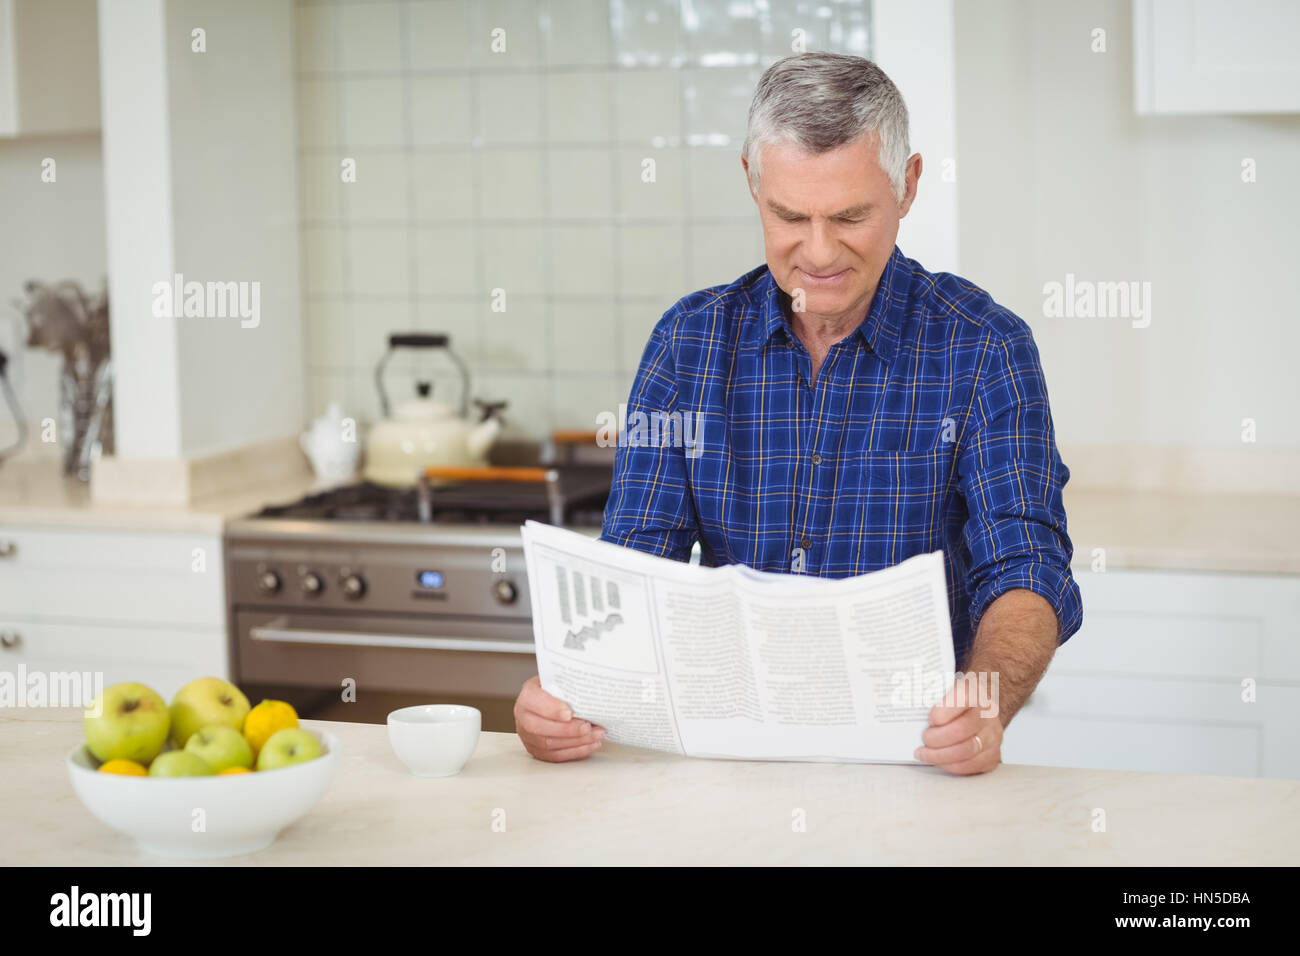 Senor man reading newspaper in kitchen at home - Stock Image